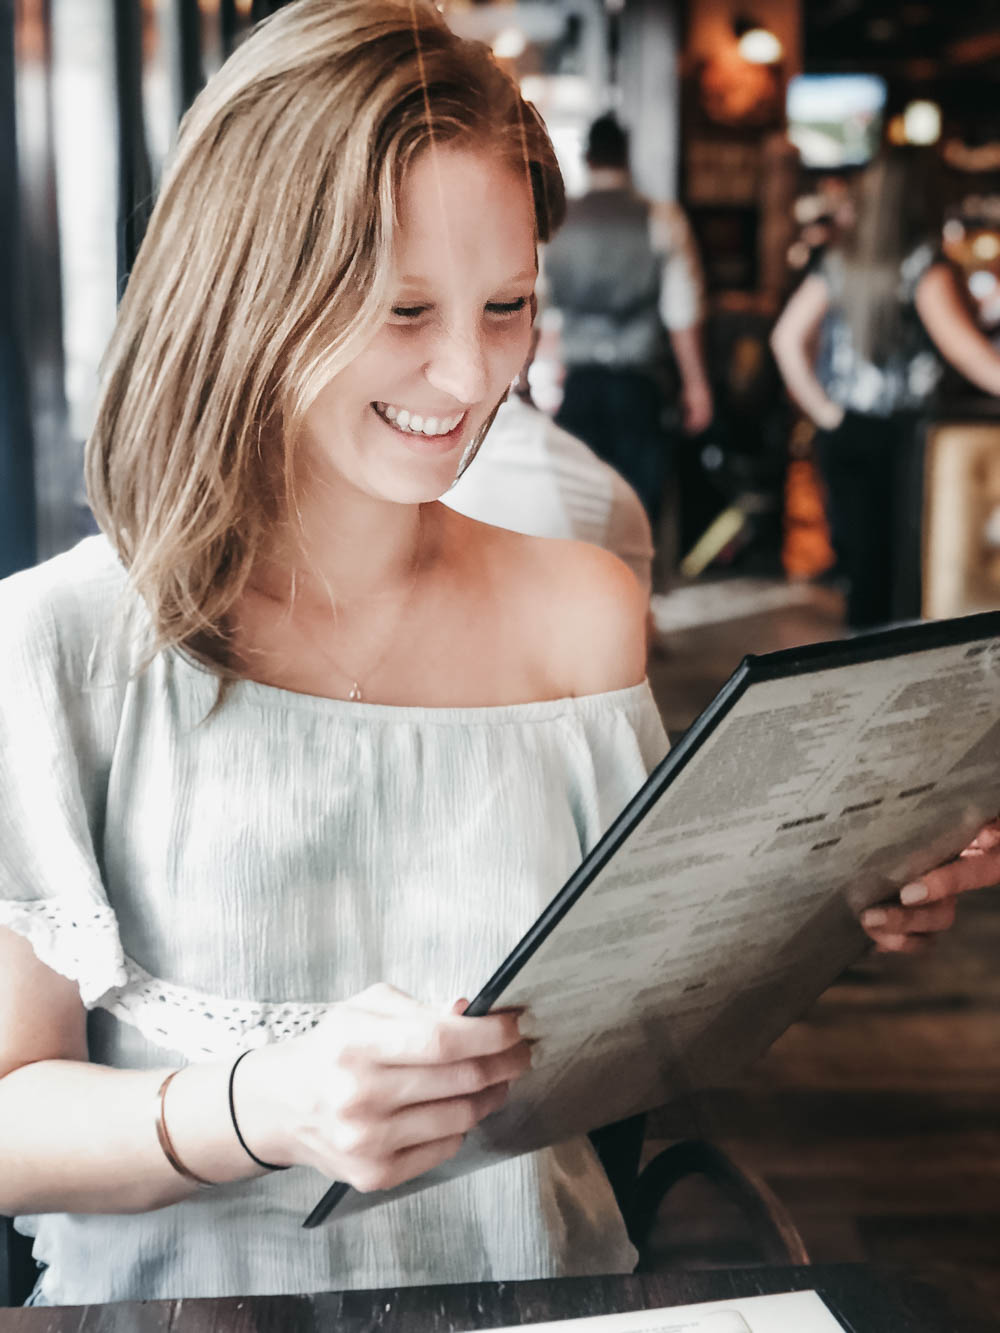 Smiling woman looking at Ft. Lauderdale menu